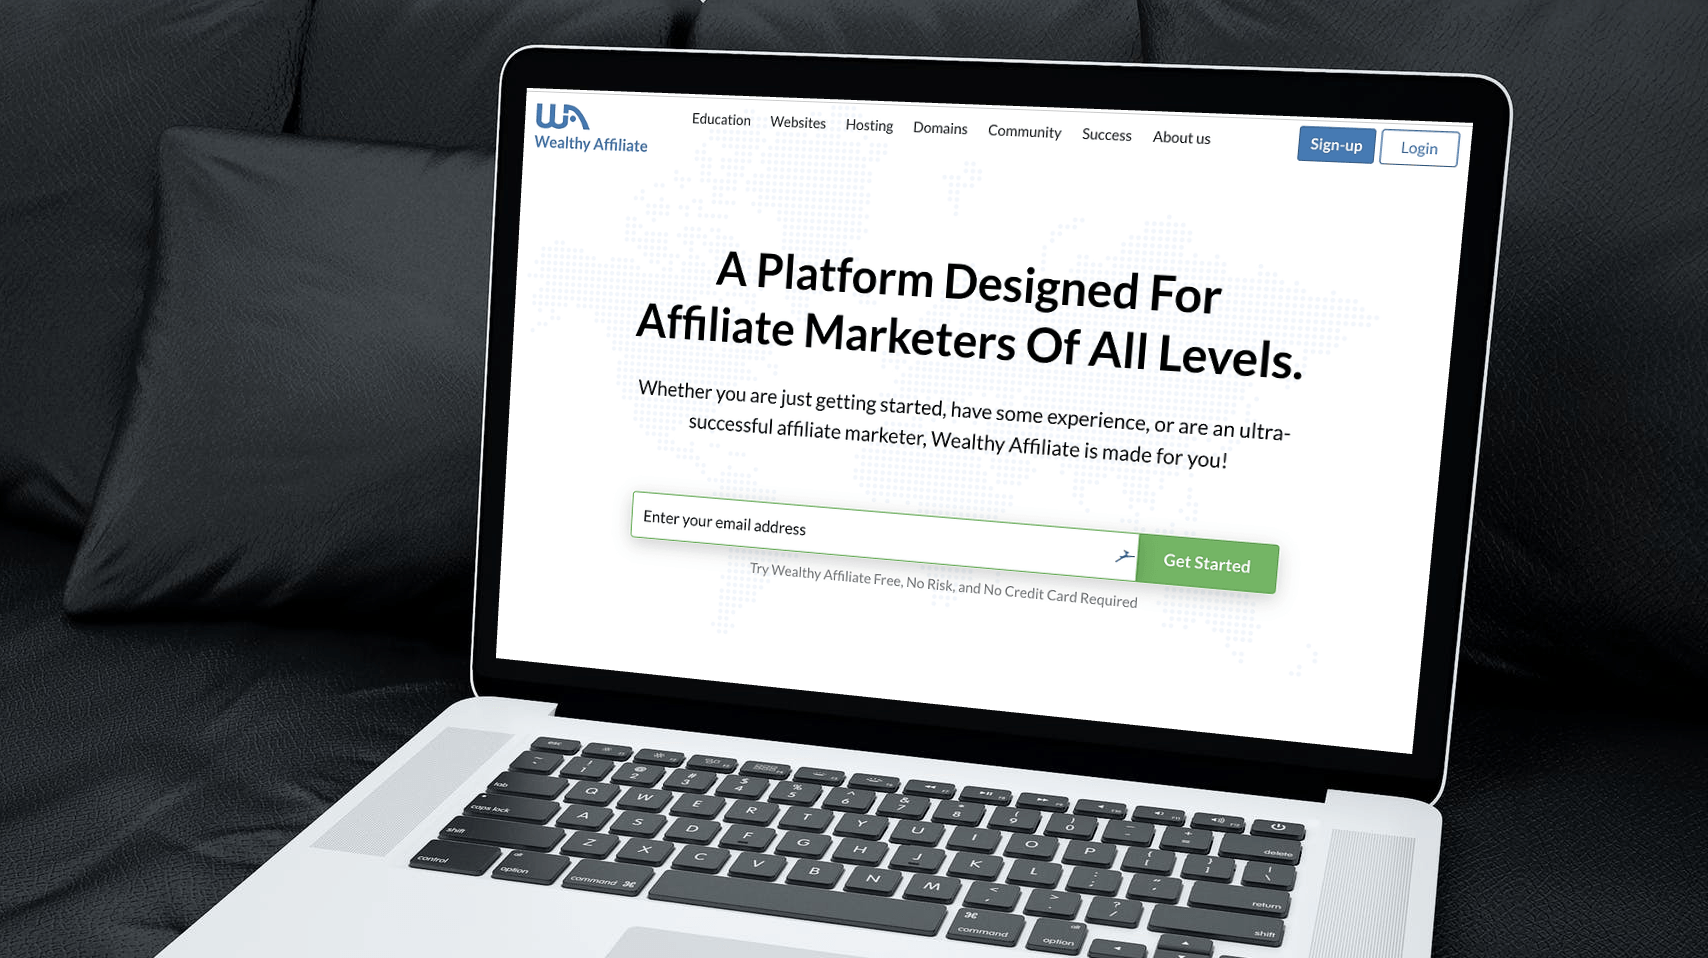 become a successful affiliate marketer in 2019 with wealthy affiliate